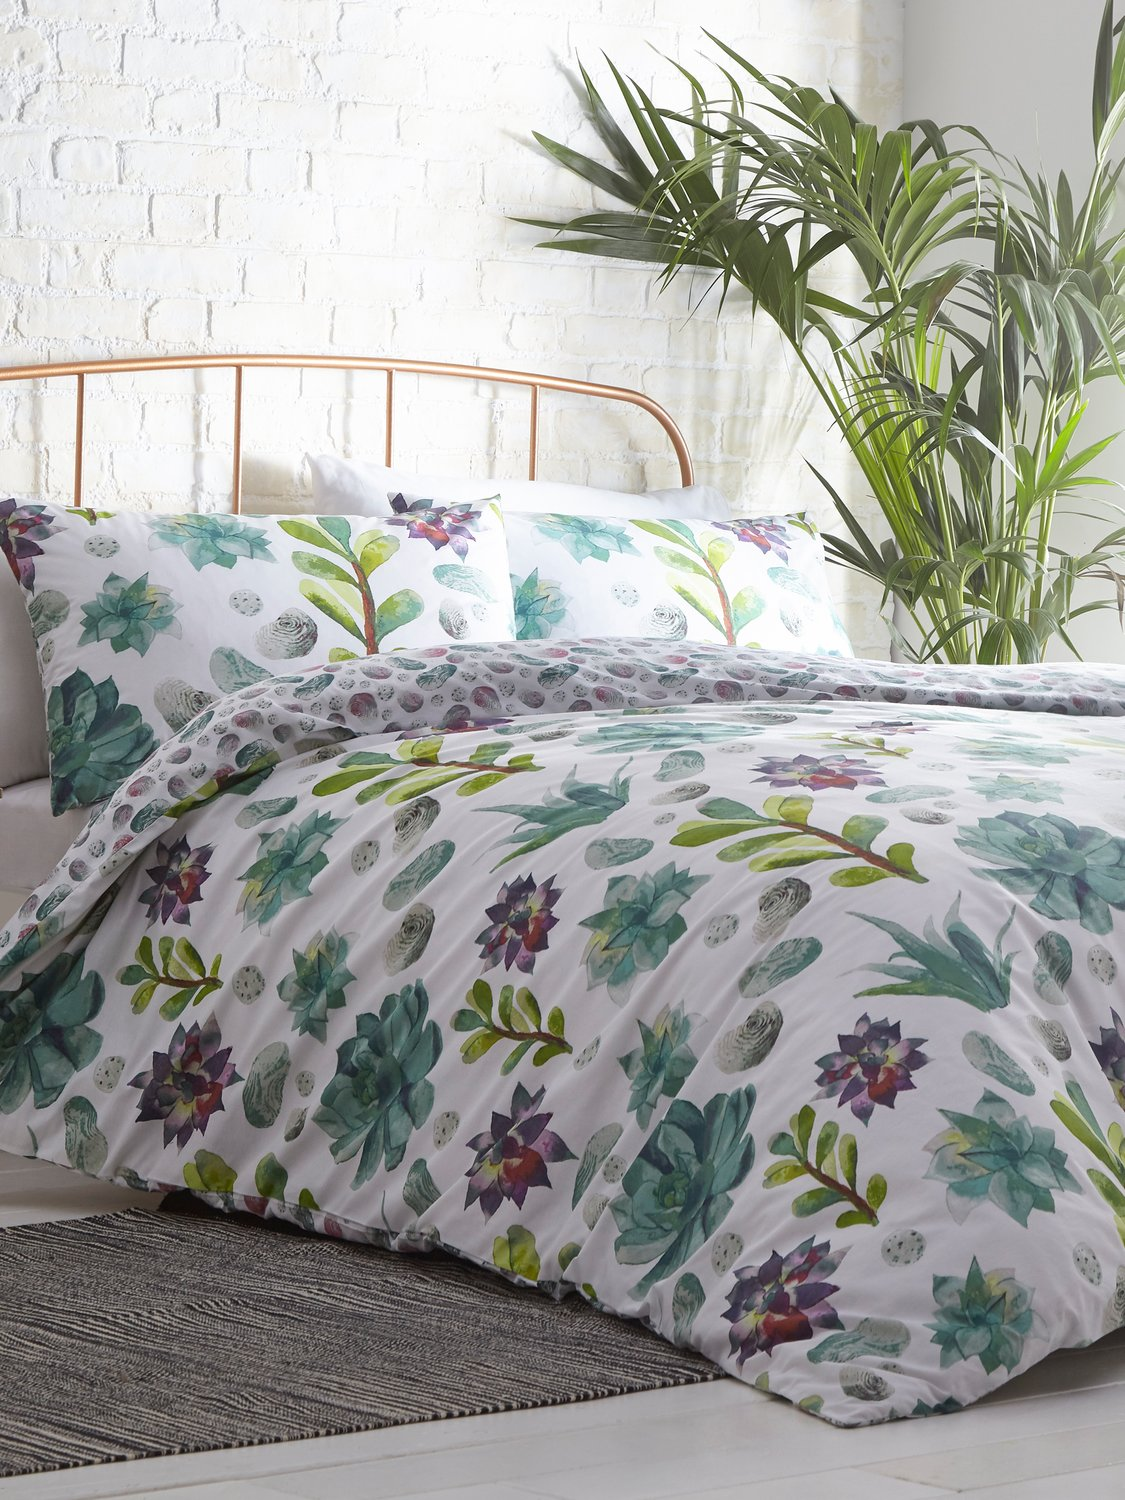 Image of Home floral print duvet set with reversible botanical print purple and green flowers - White